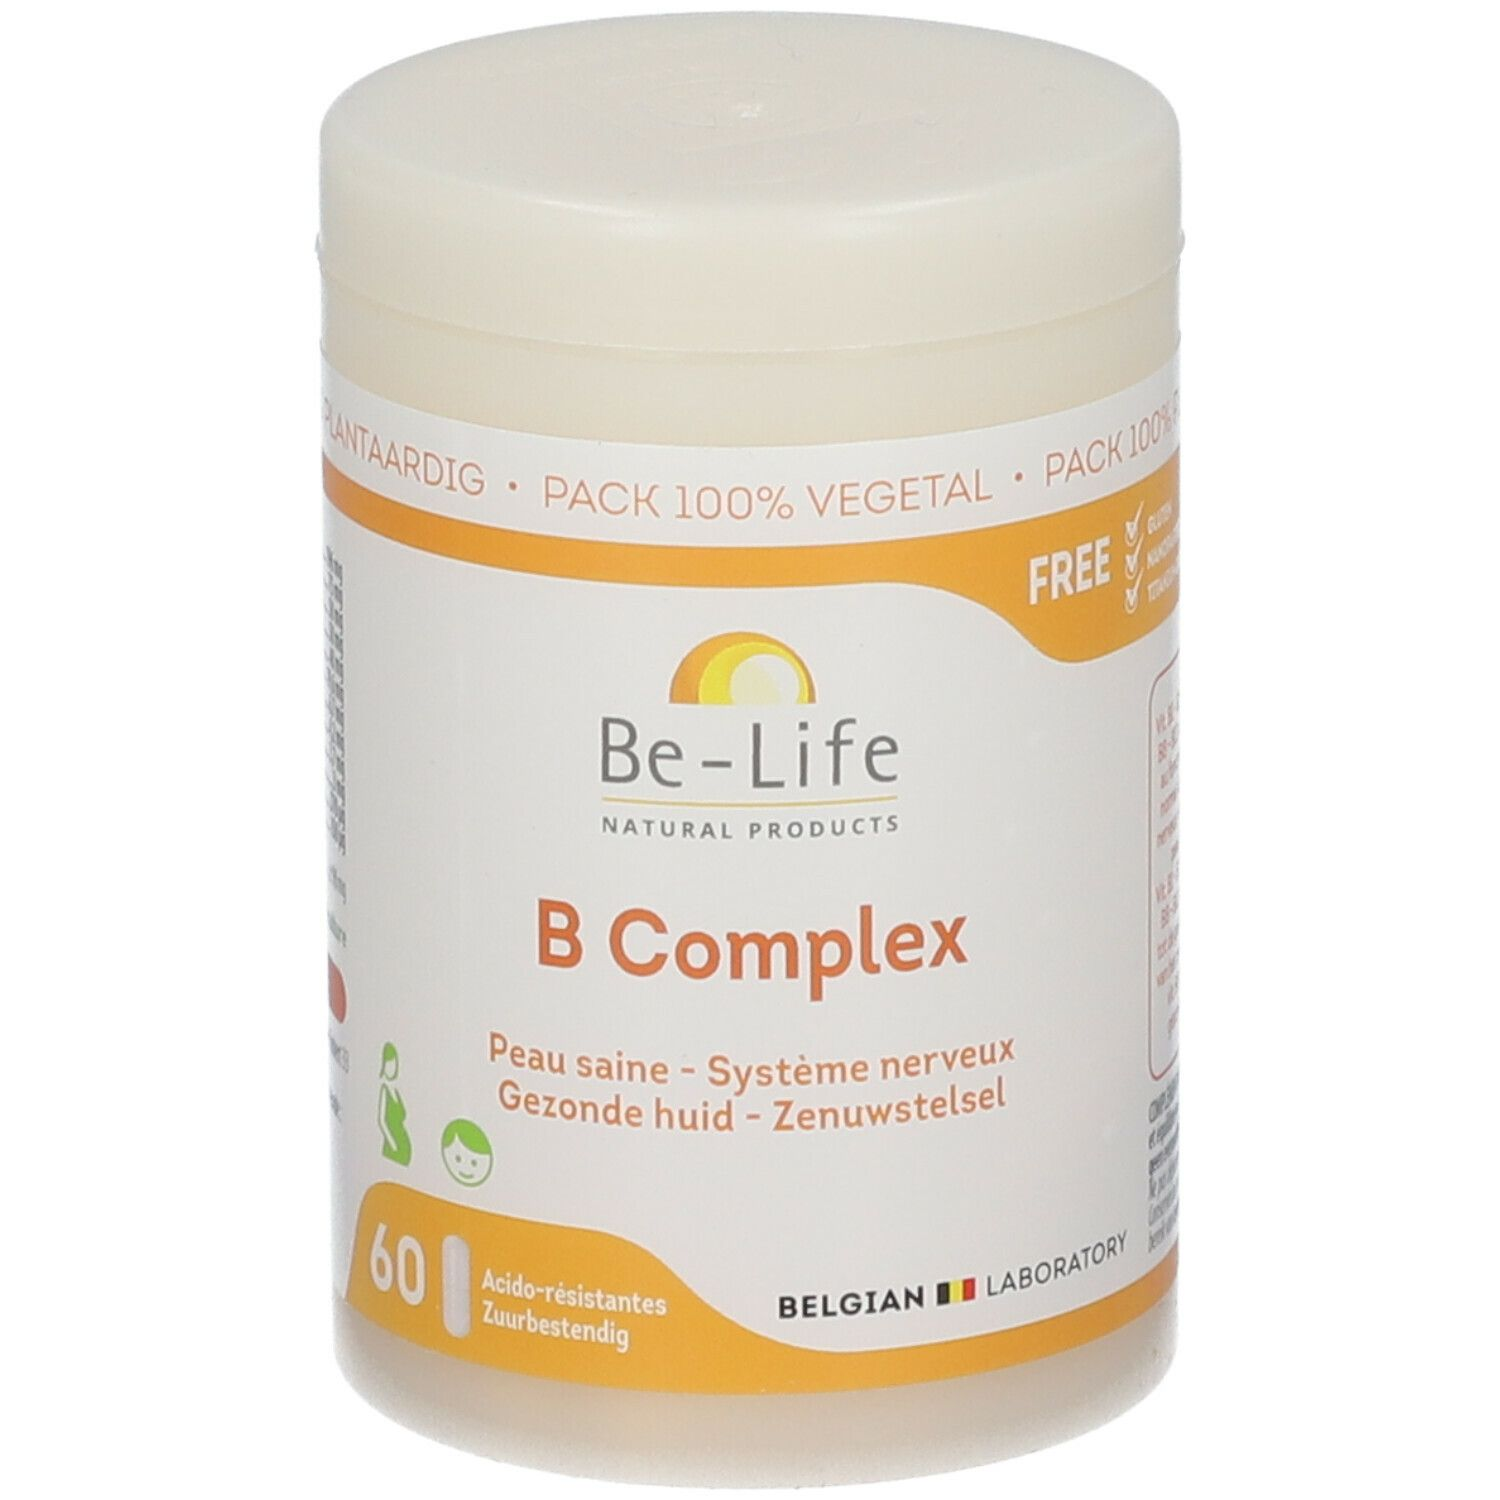 Image of Be-Life B Complex